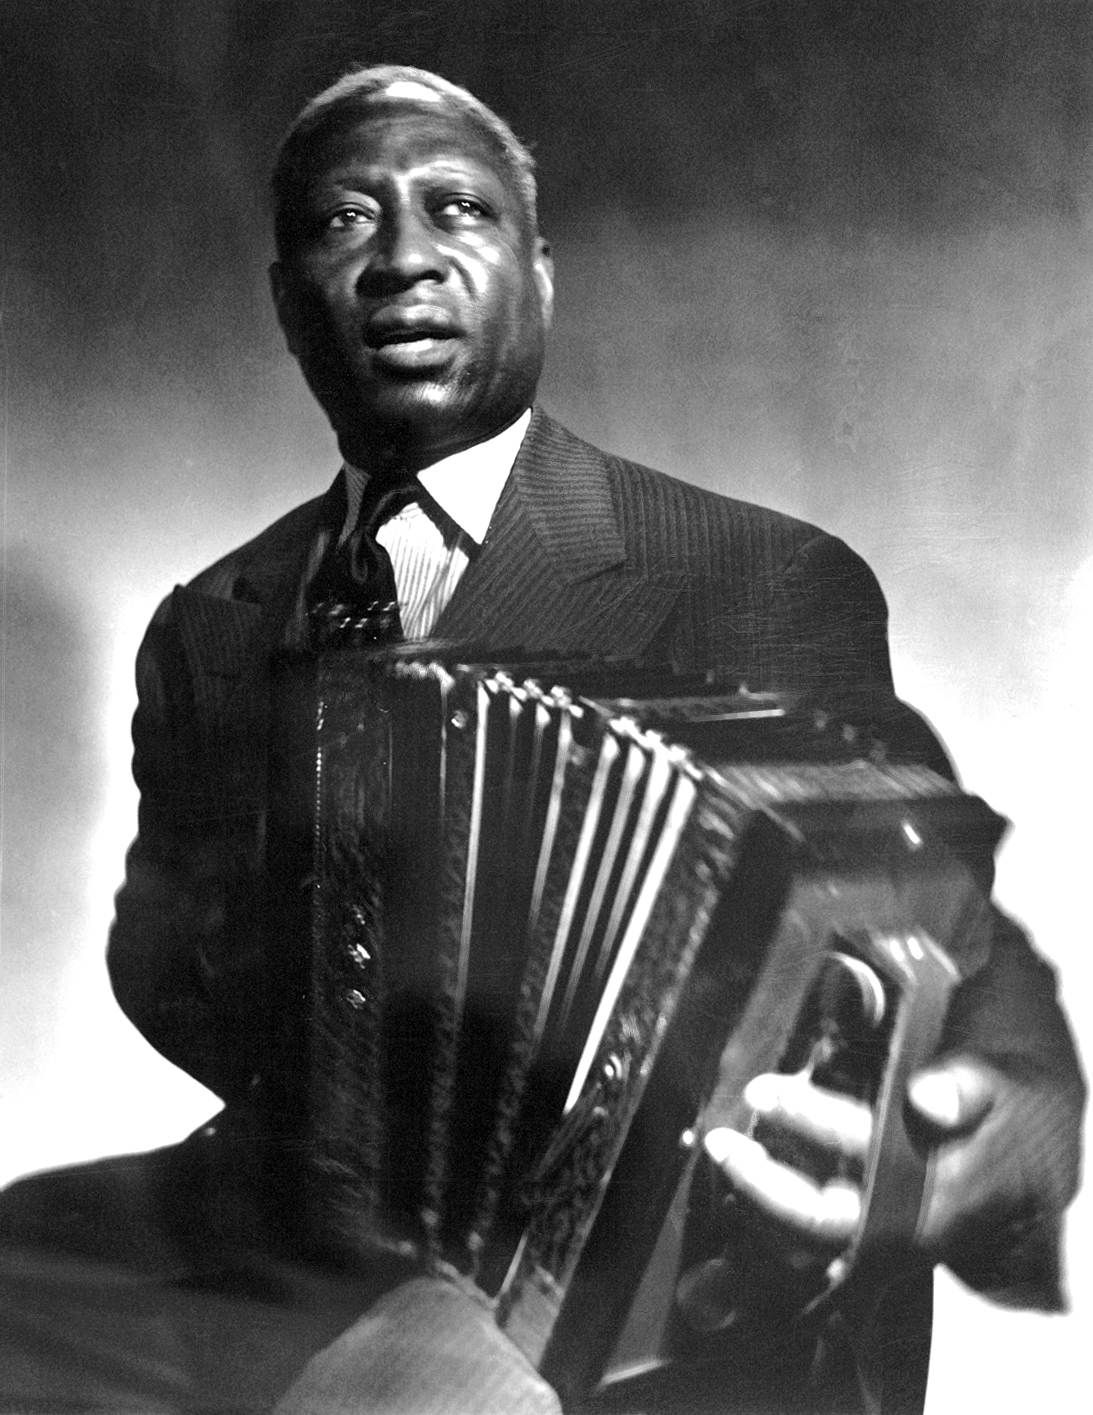 Leadbelly with Accordeon